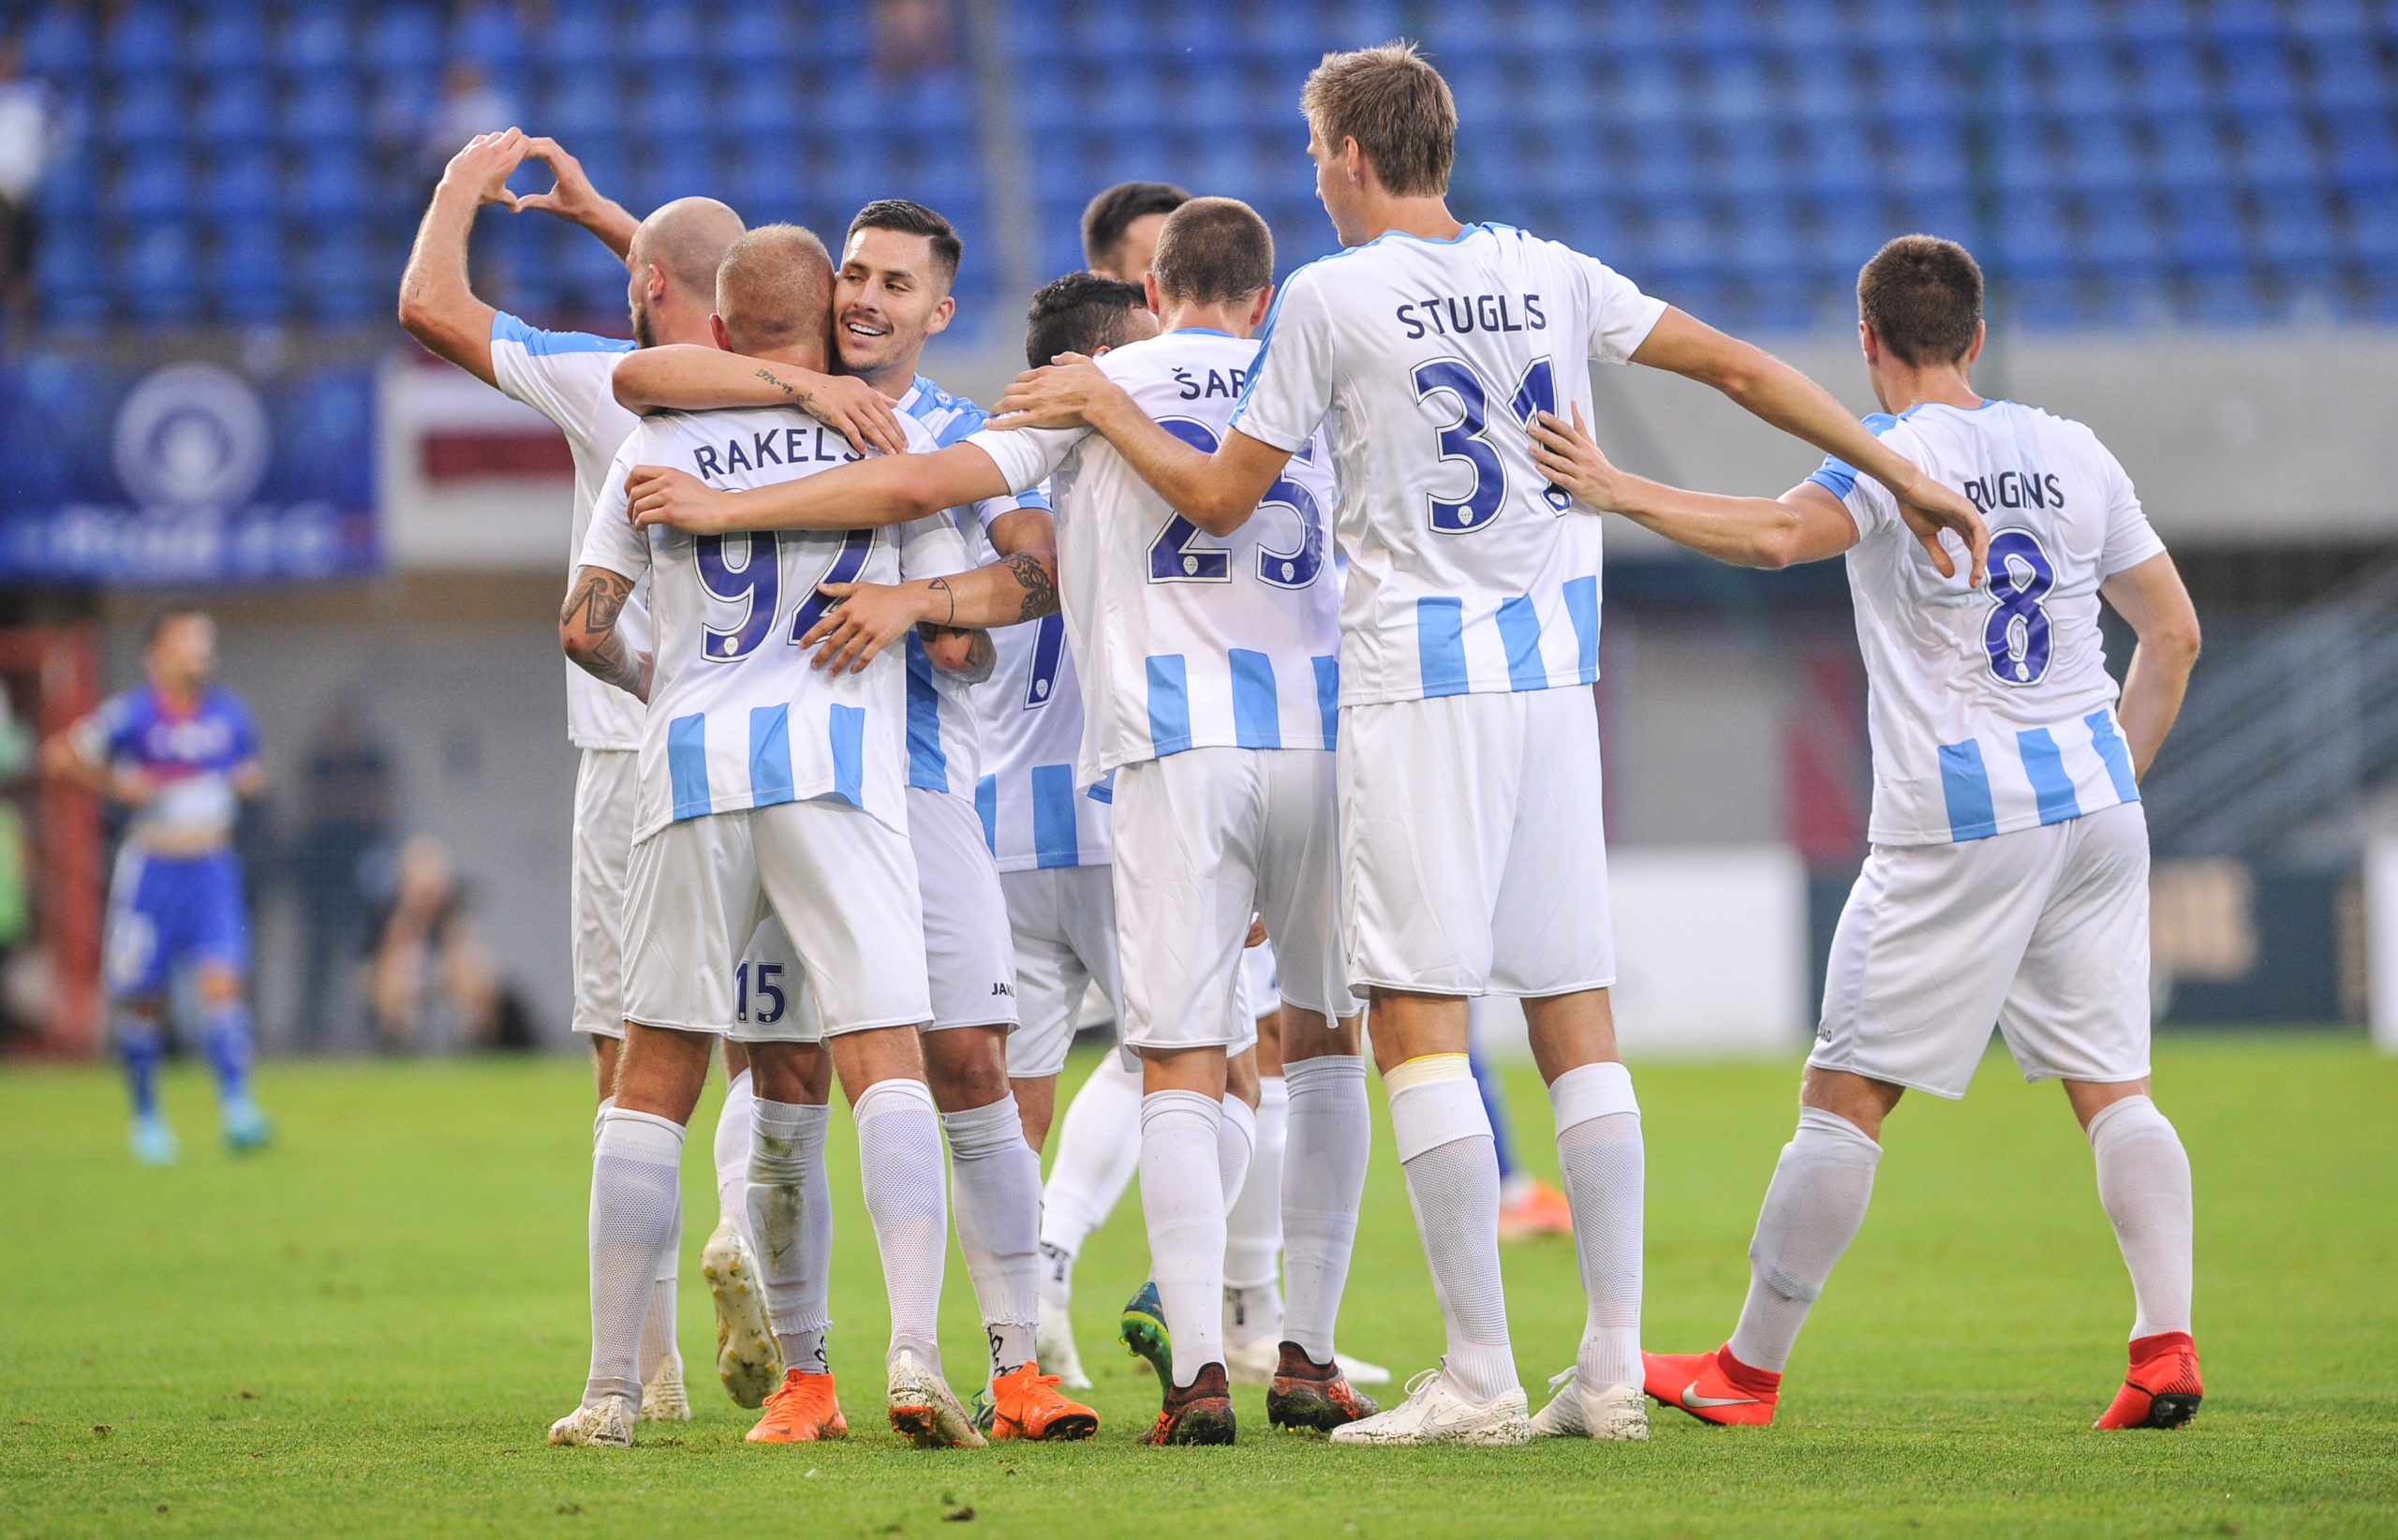 Riga FC celebrate a goal in Europe